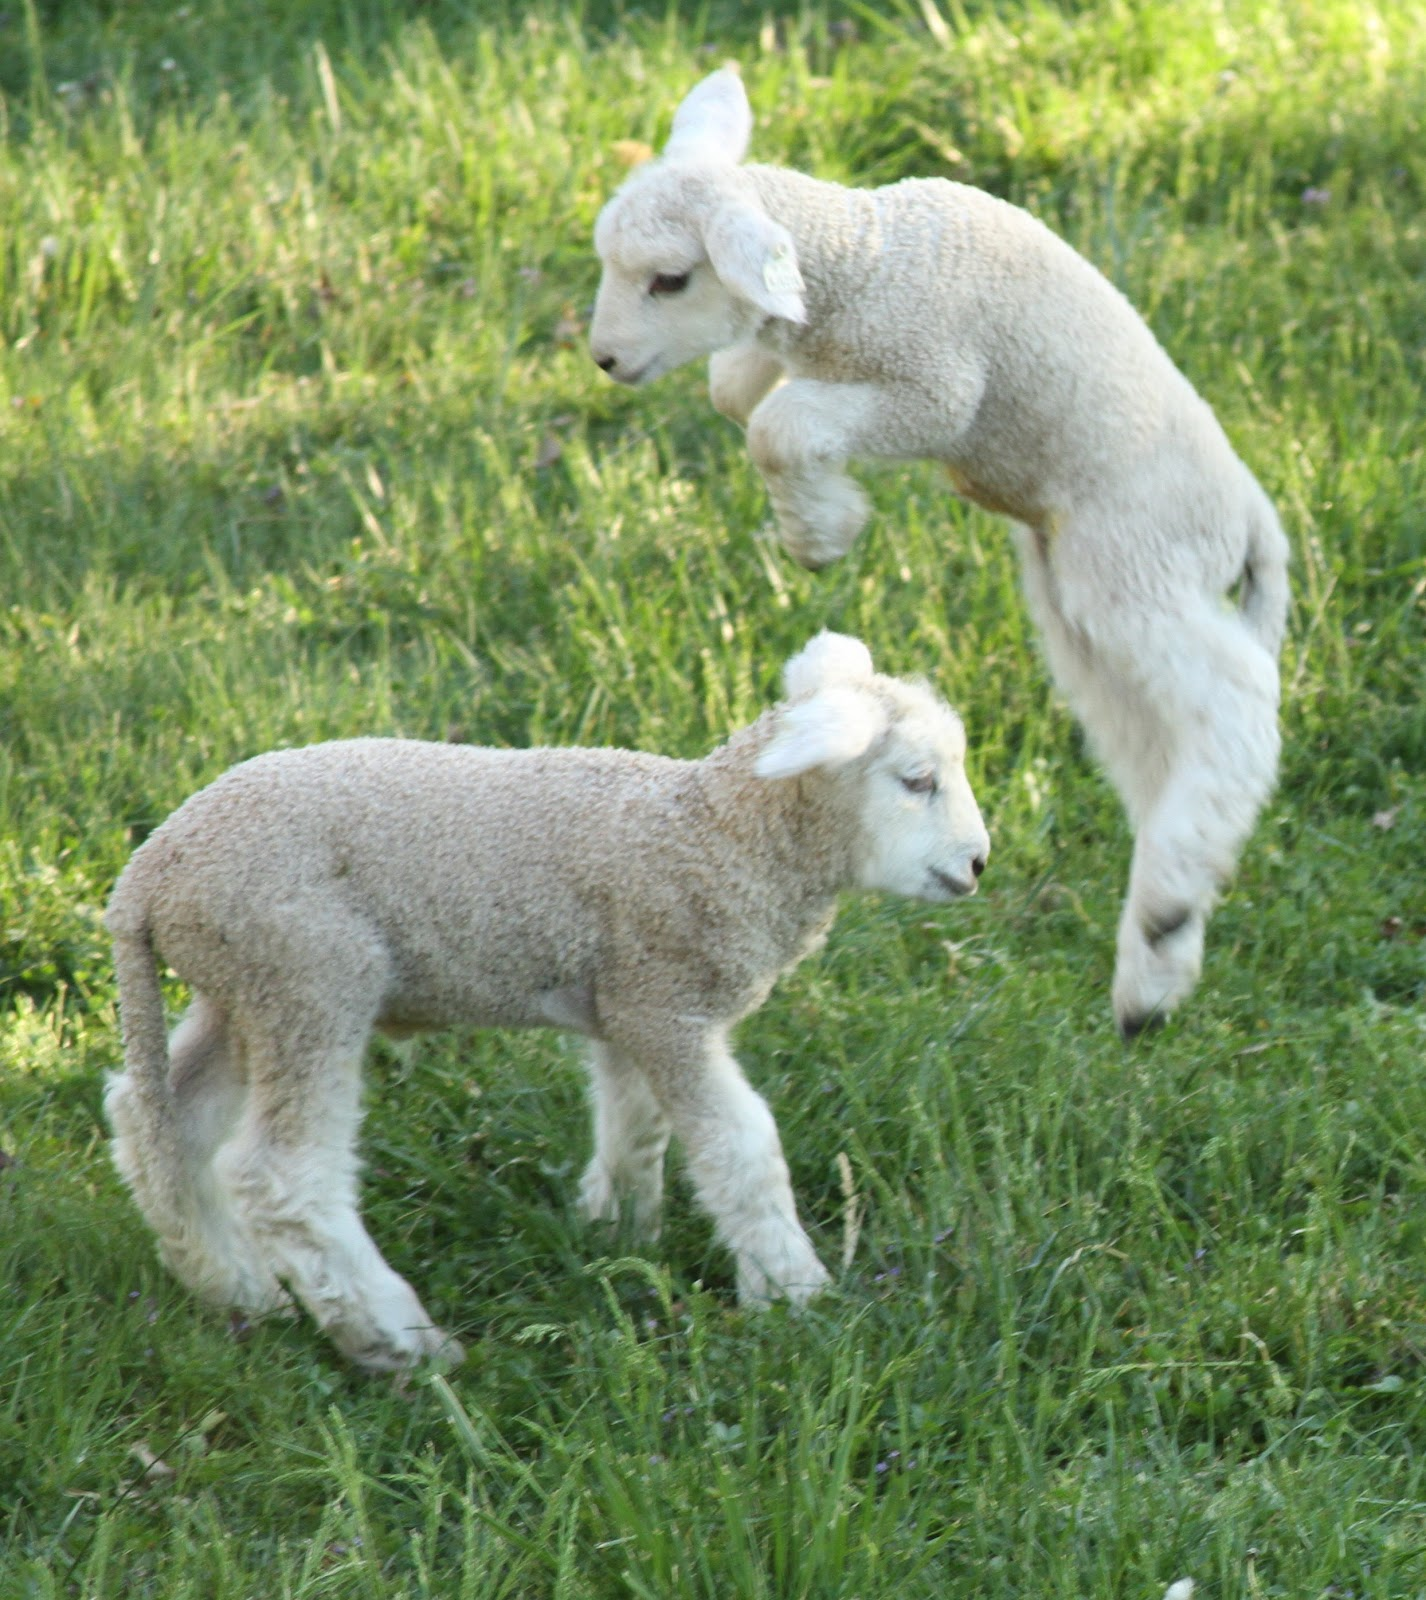 losing sleep counting sheep: lambs at play